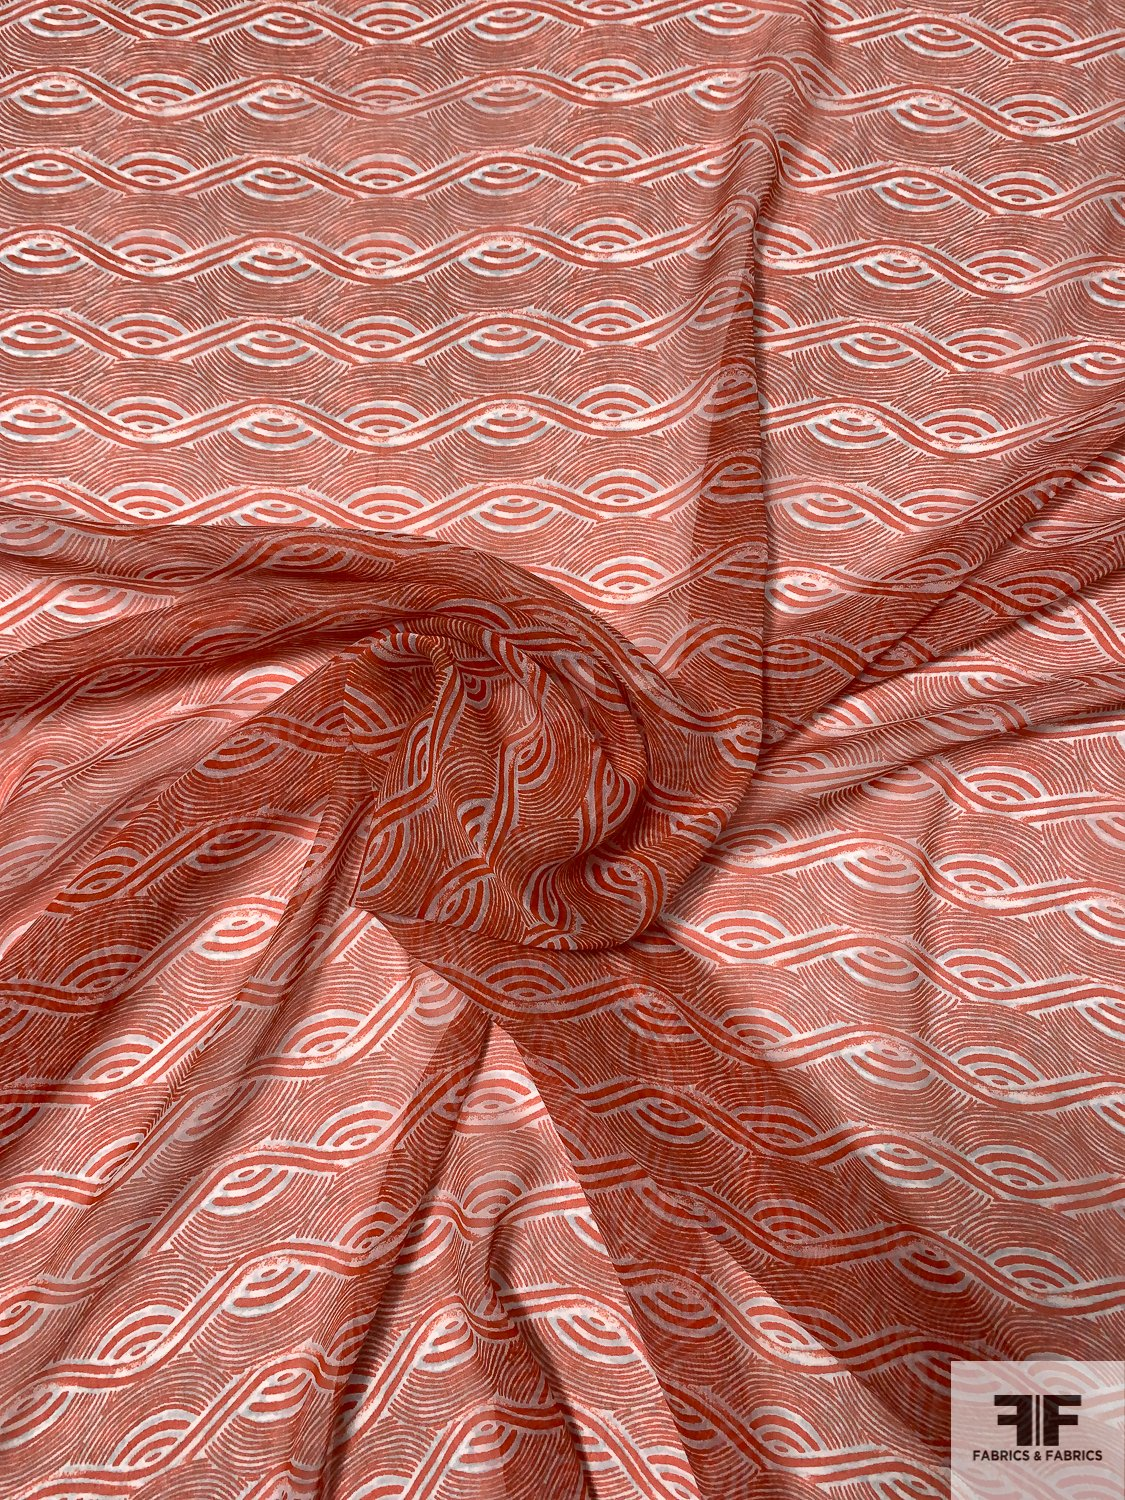 Wavy Art Deco Printed Silk Chiffon - Blood Orange / Off-White